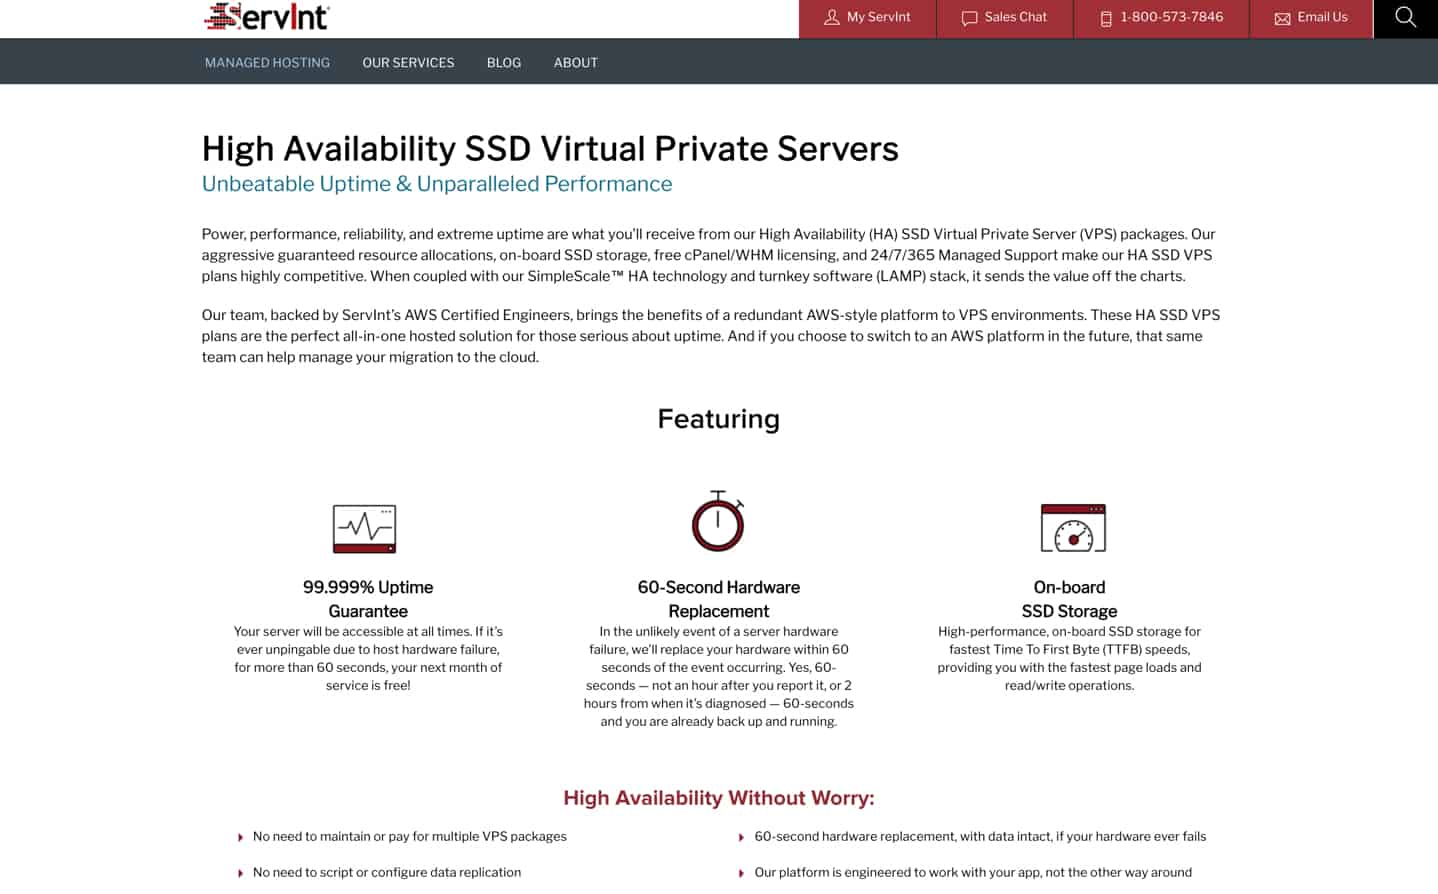 servint web hosting review ssd